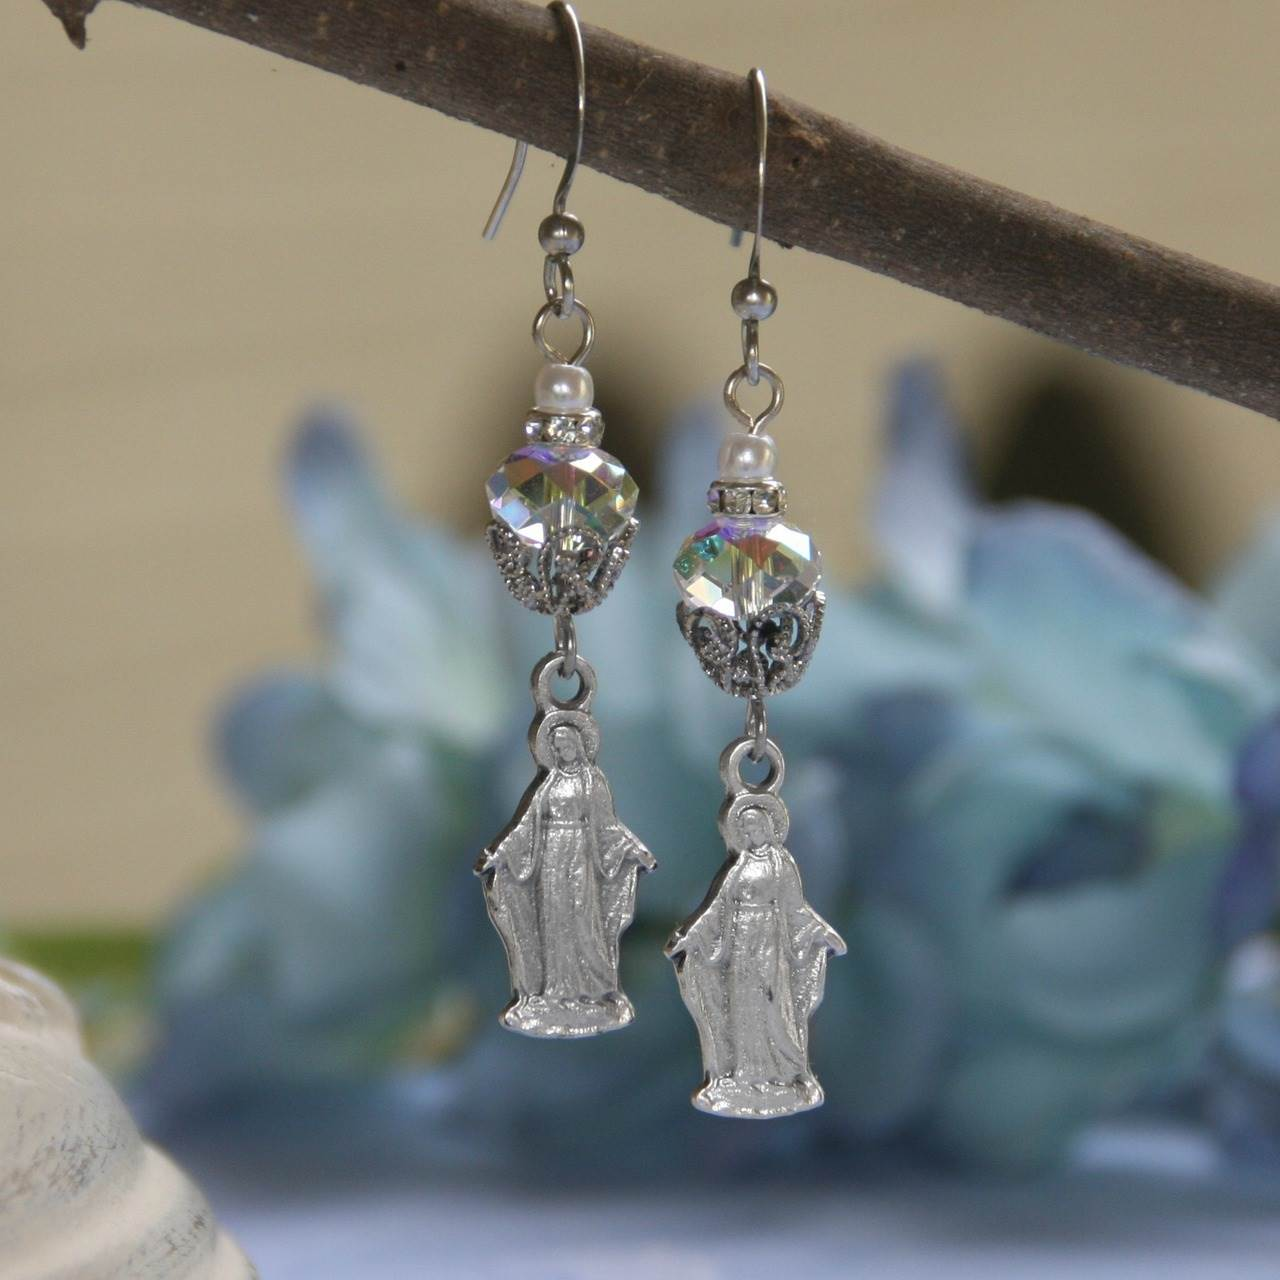 Mary Earrings earrings, mary earrings, drop earrings, jewelry, in-56